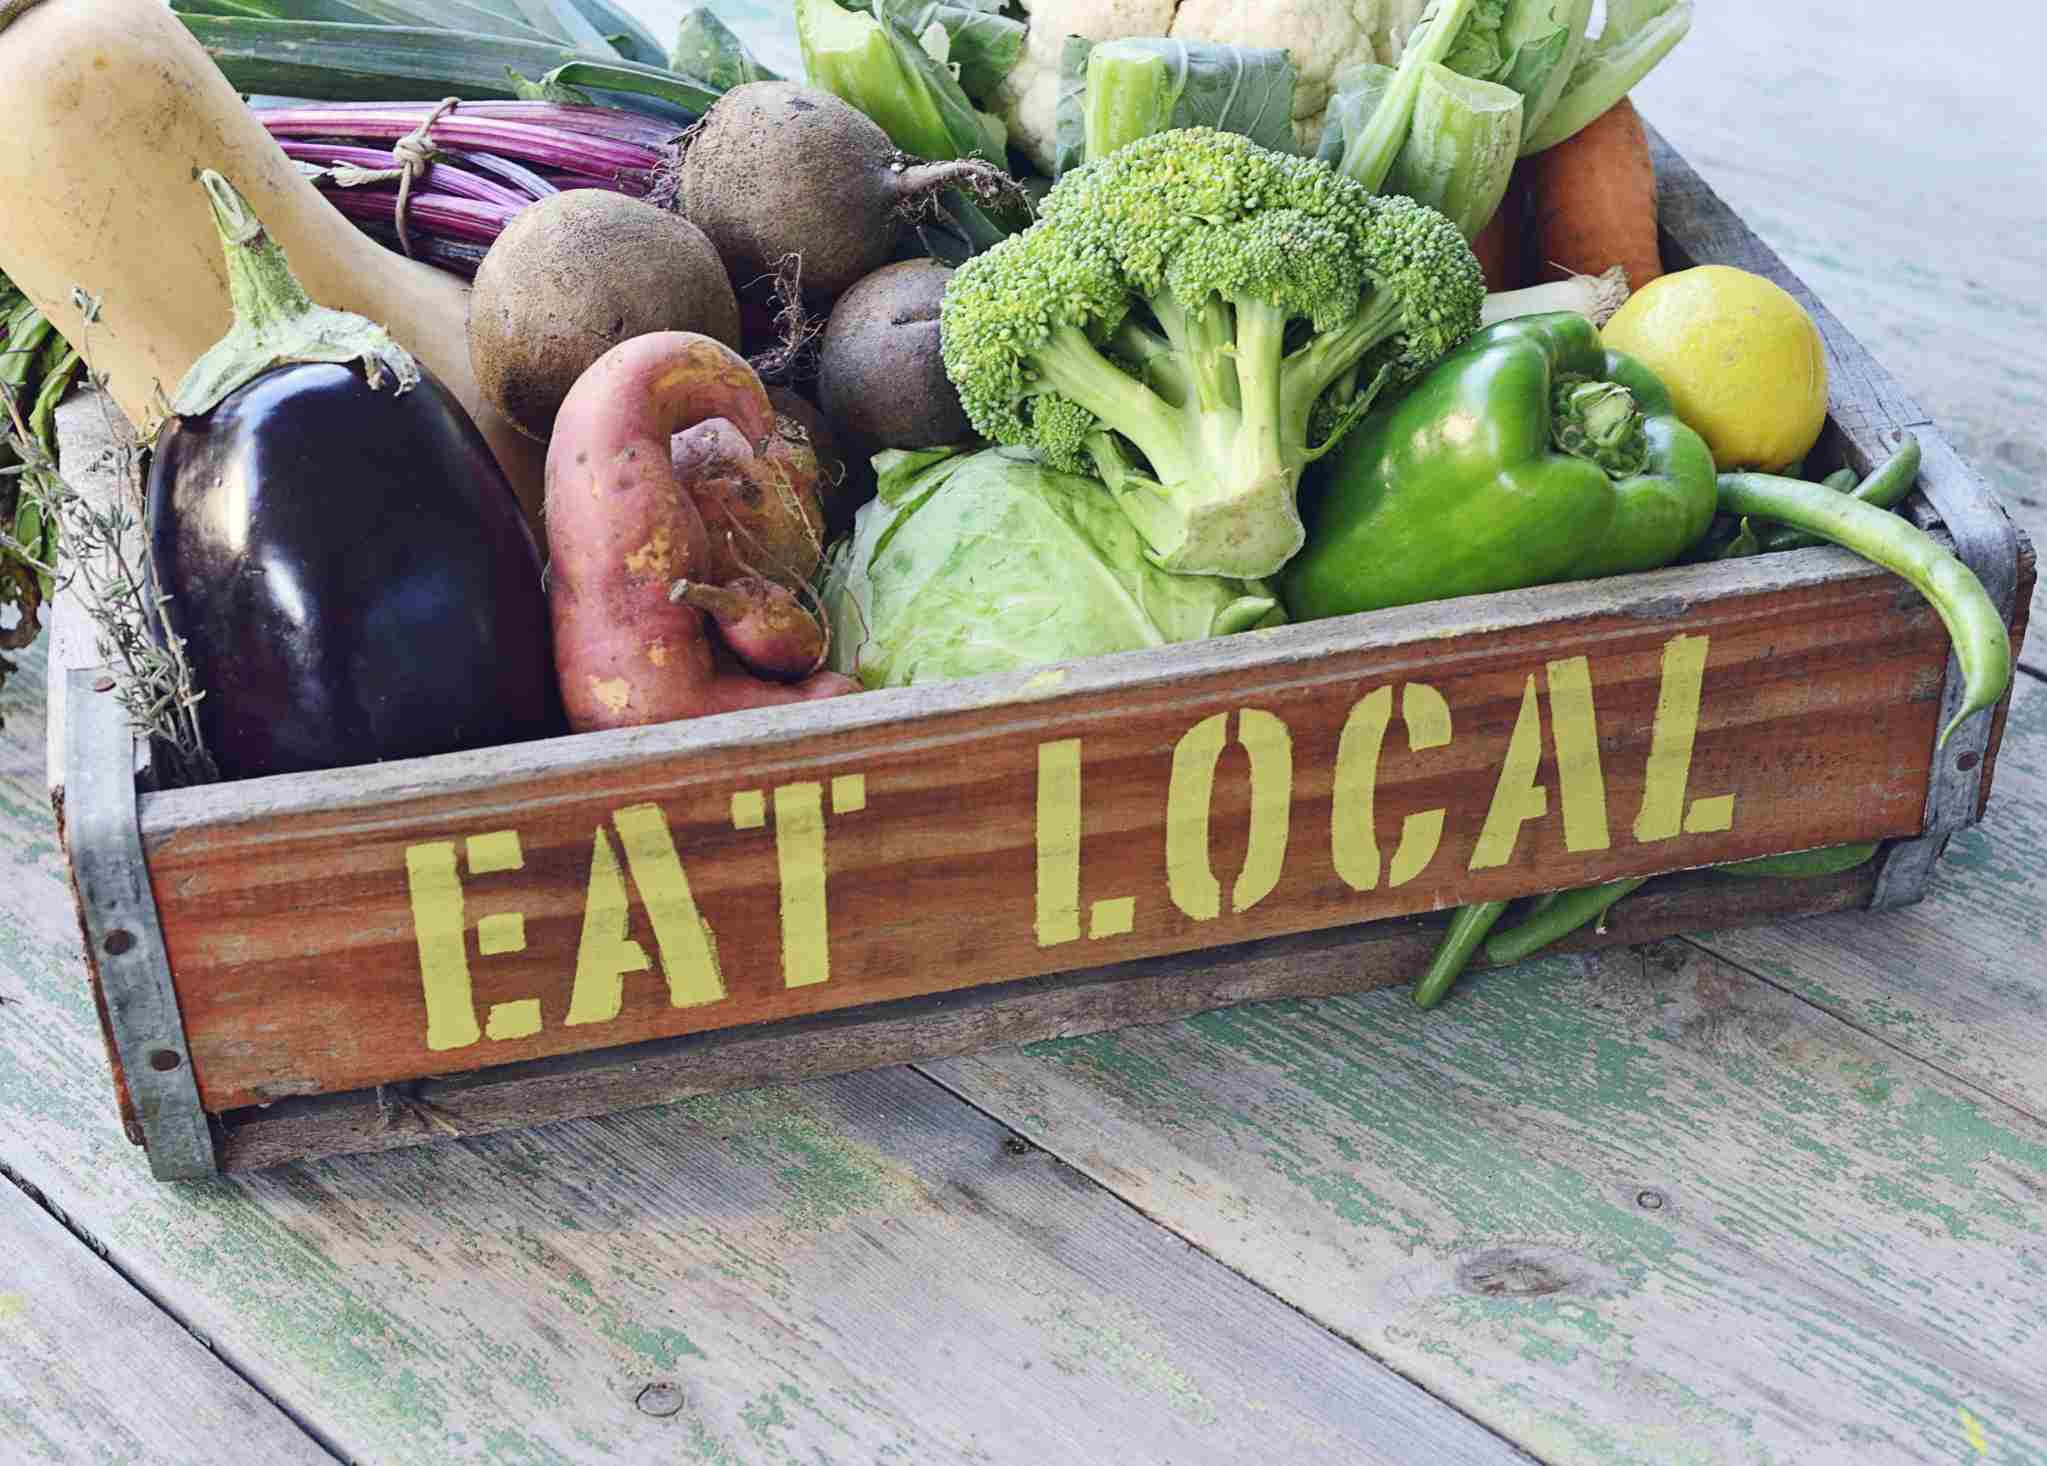 Who Buys Organic Food: Different Types of Consumers